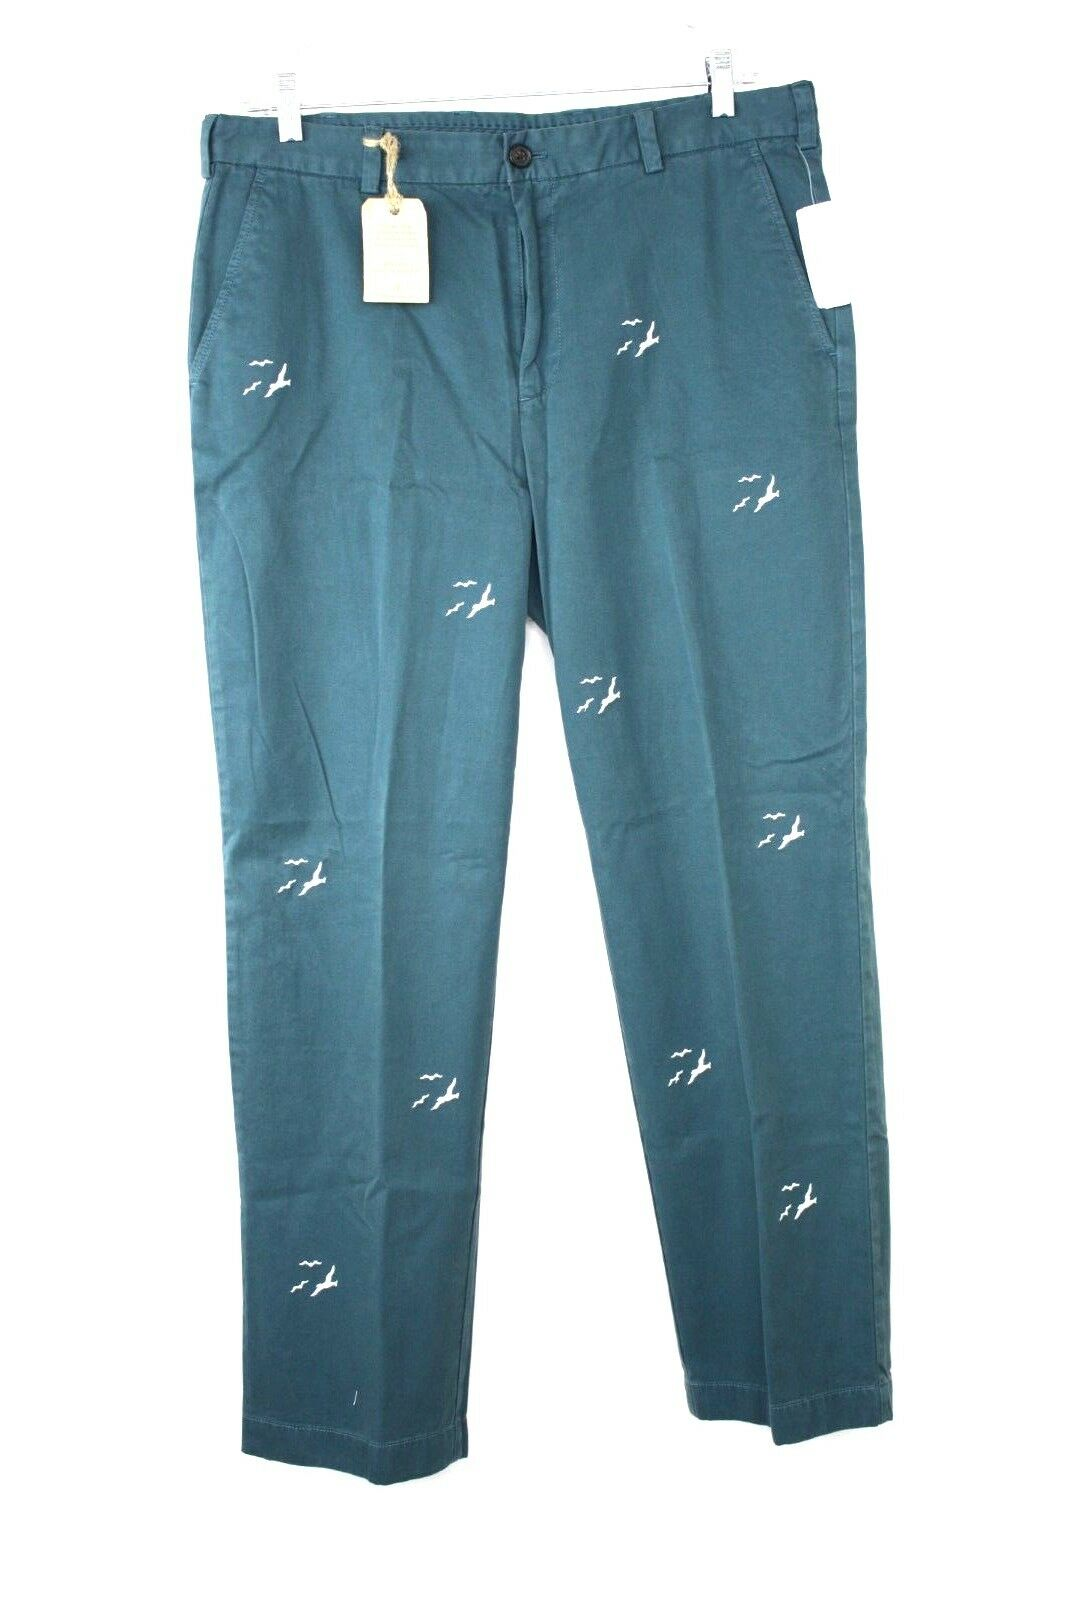 BROOKS BredHERS Men's TEAL EMBROIDERED BIRDS CLARK CASUAL PANTS Size 38 32